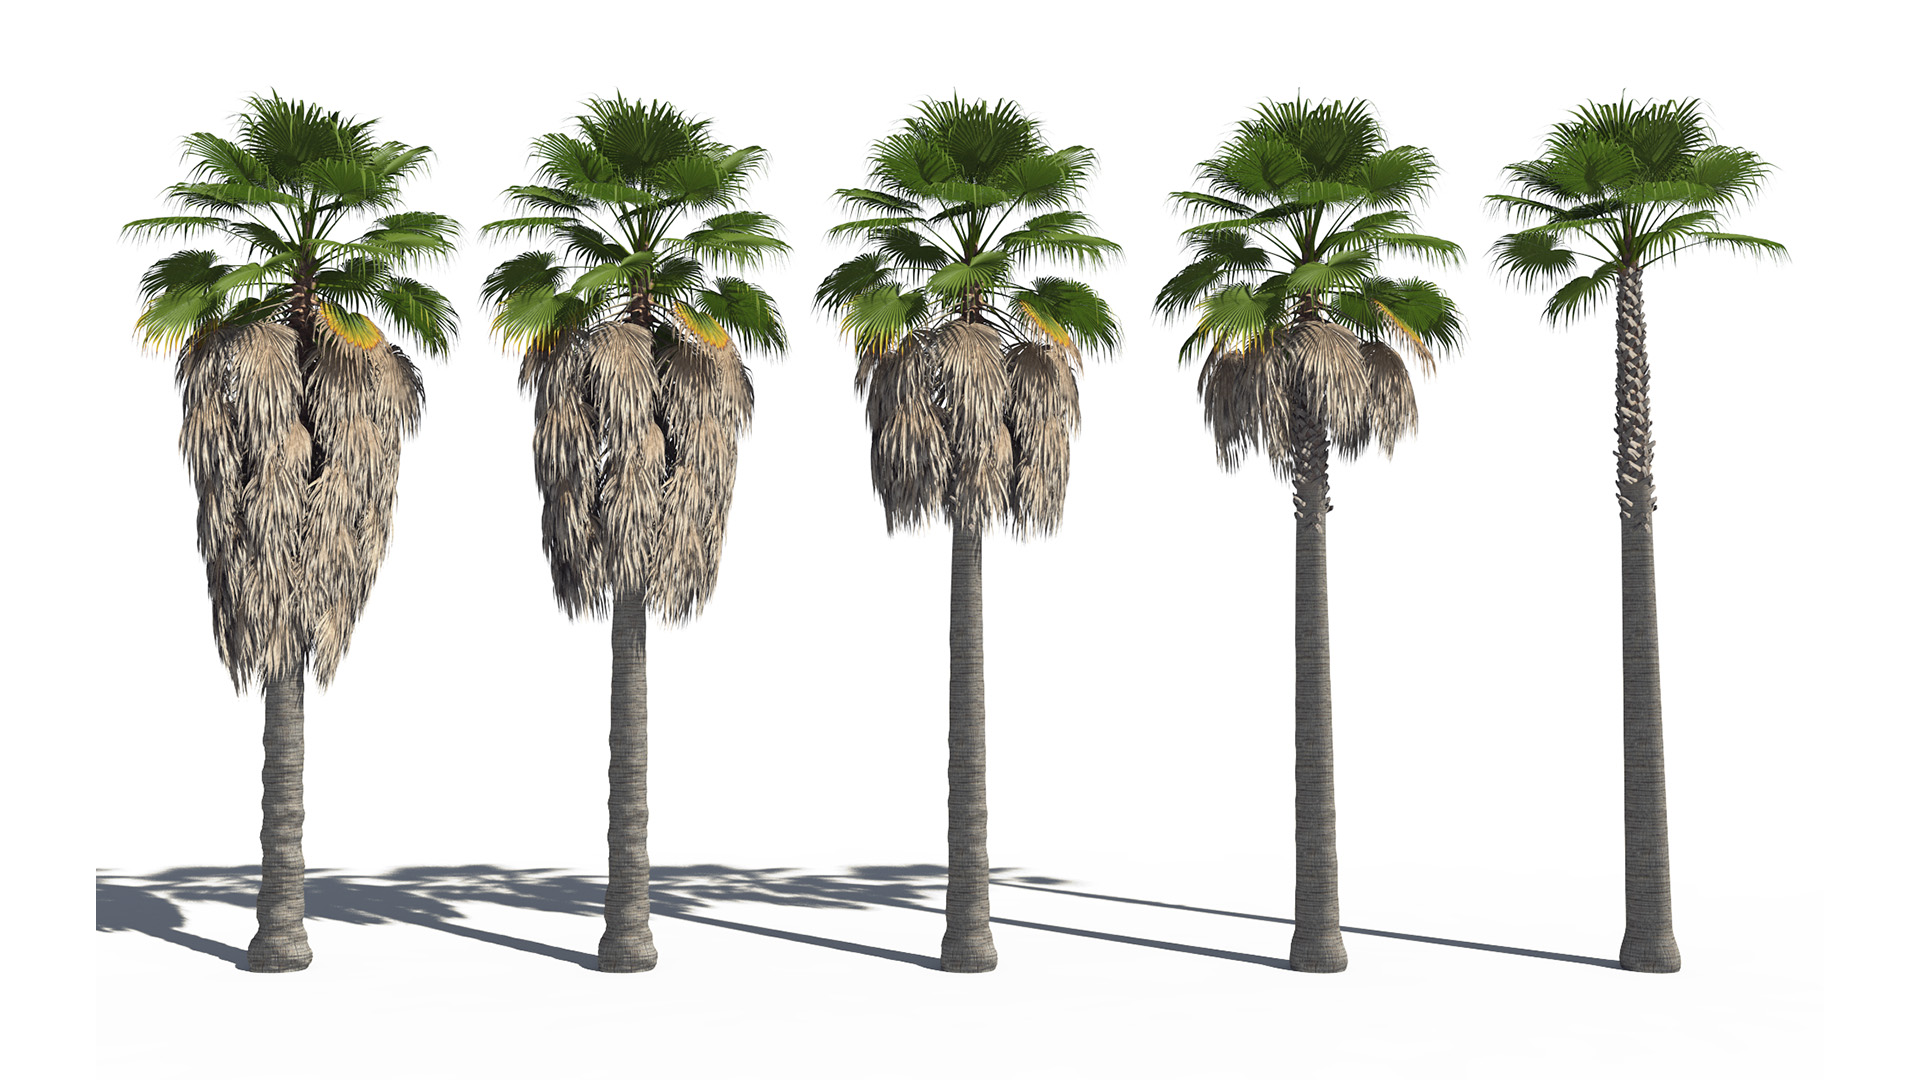 3D model of the California fan palm Washingtonia filifera different presets